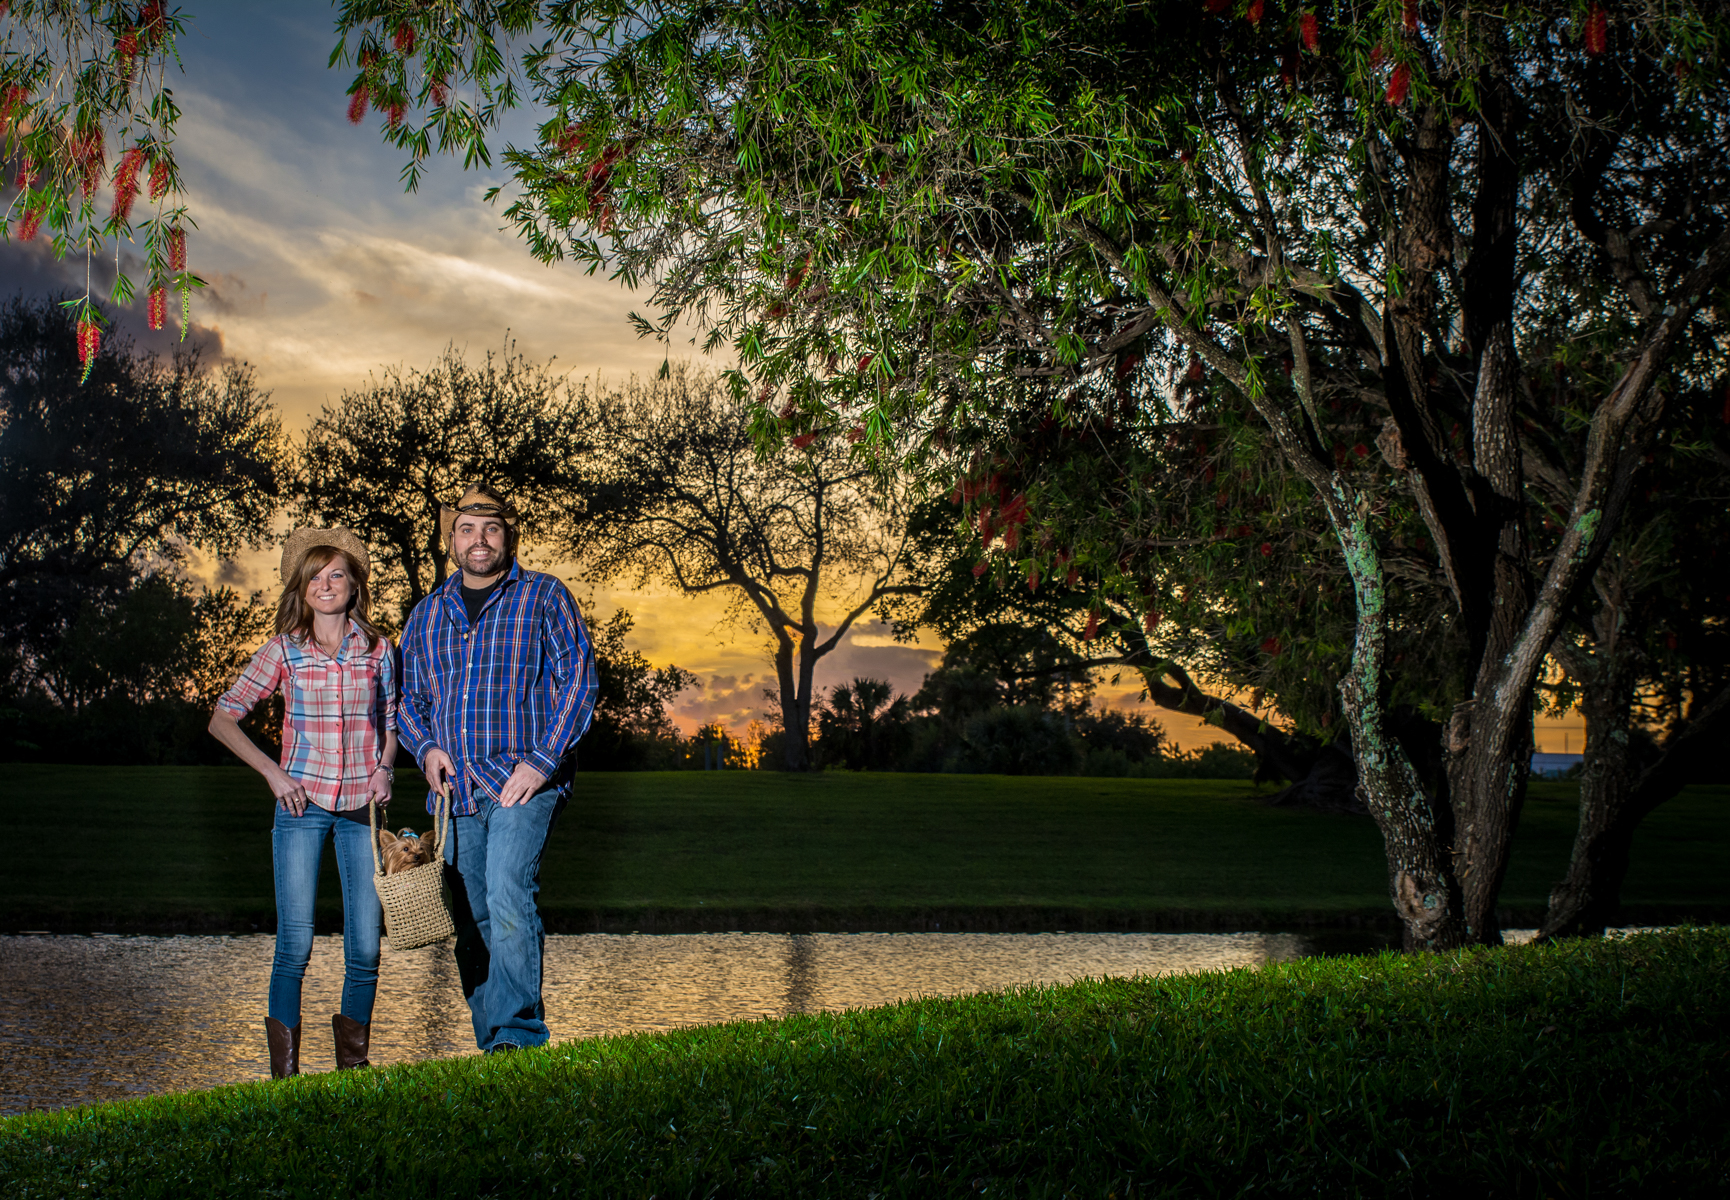 Couples photography on location or in studio in Royal Palm Beach Gardens, FL